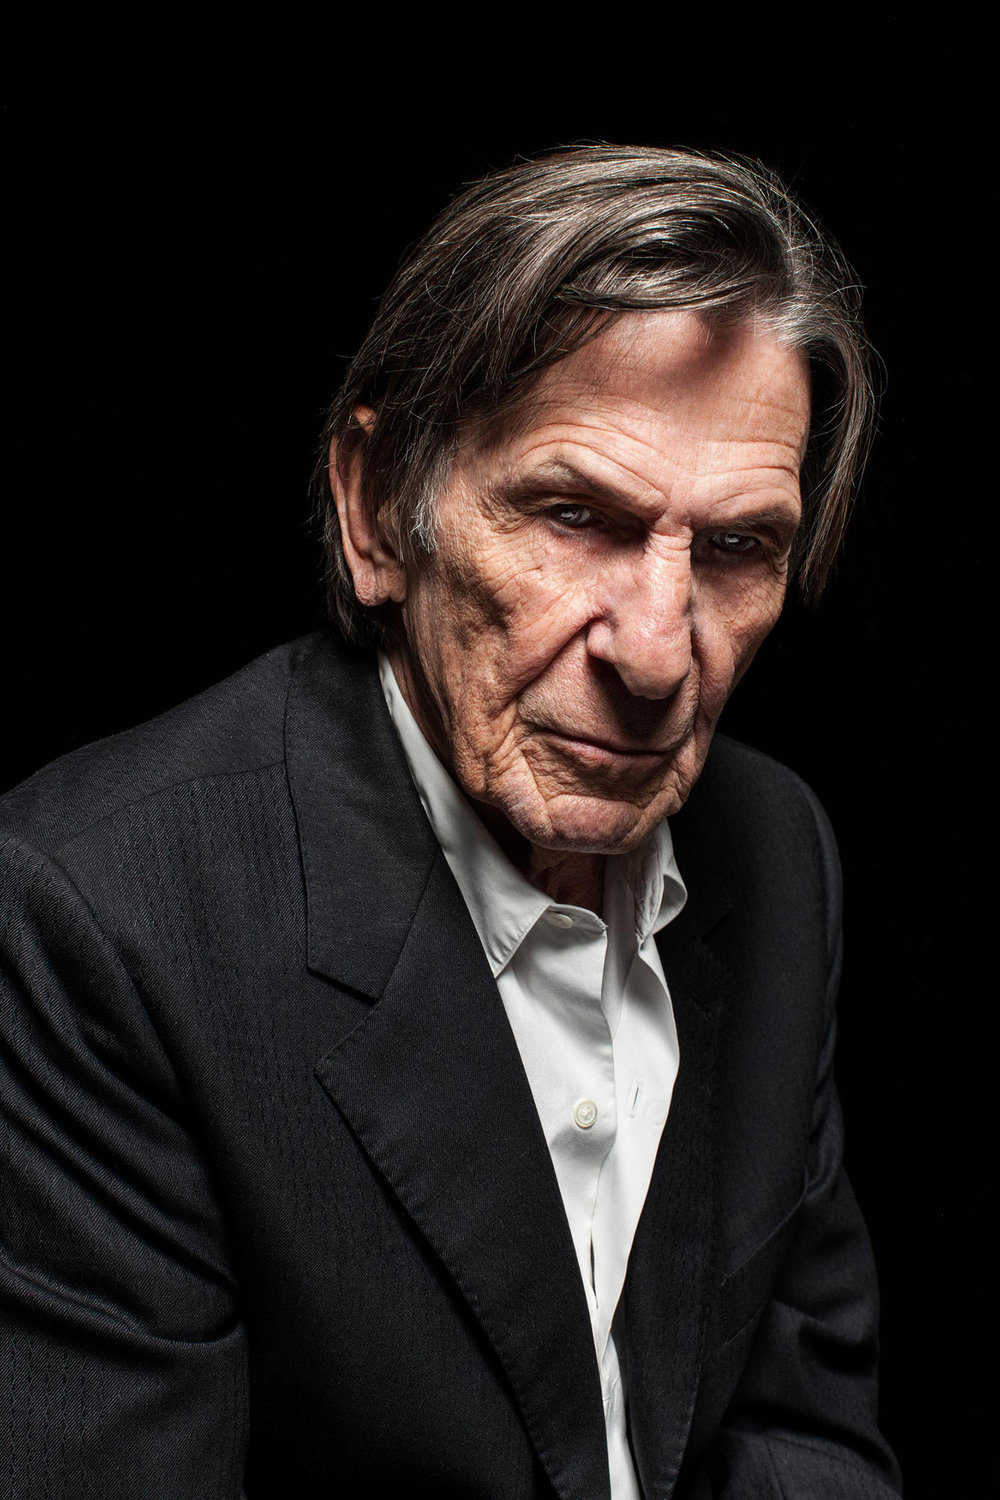 Leonard Nimoy, Actor, Los Angeles, California, 2013